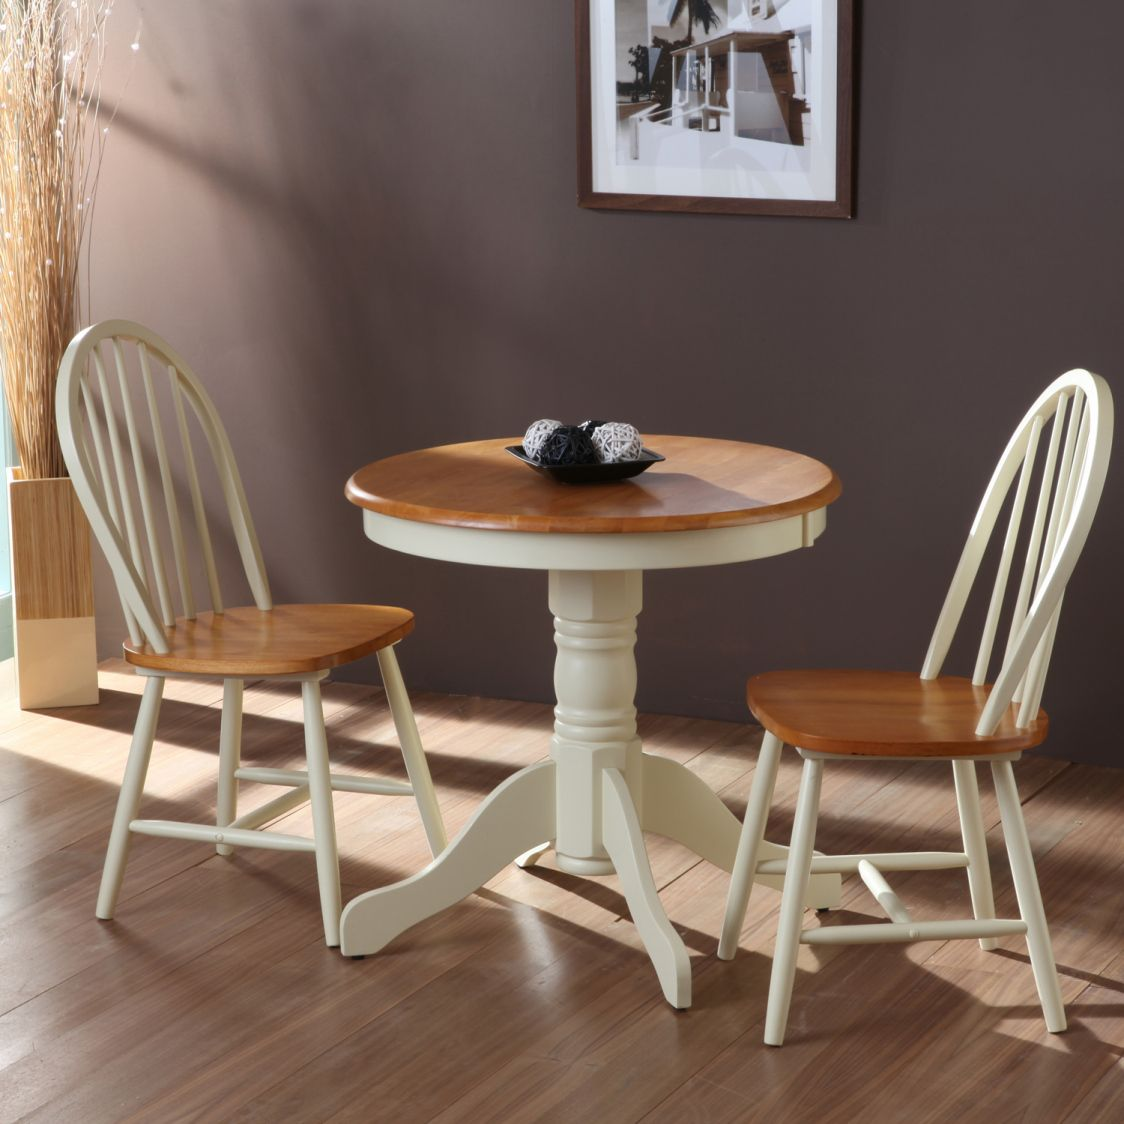 Dining Room Table For 2 Best Modern Furniture Check More At Http 1pureedm Com Dining Roo Round Kitchen Table Round Table And Chairs Round Kitchen Table Set